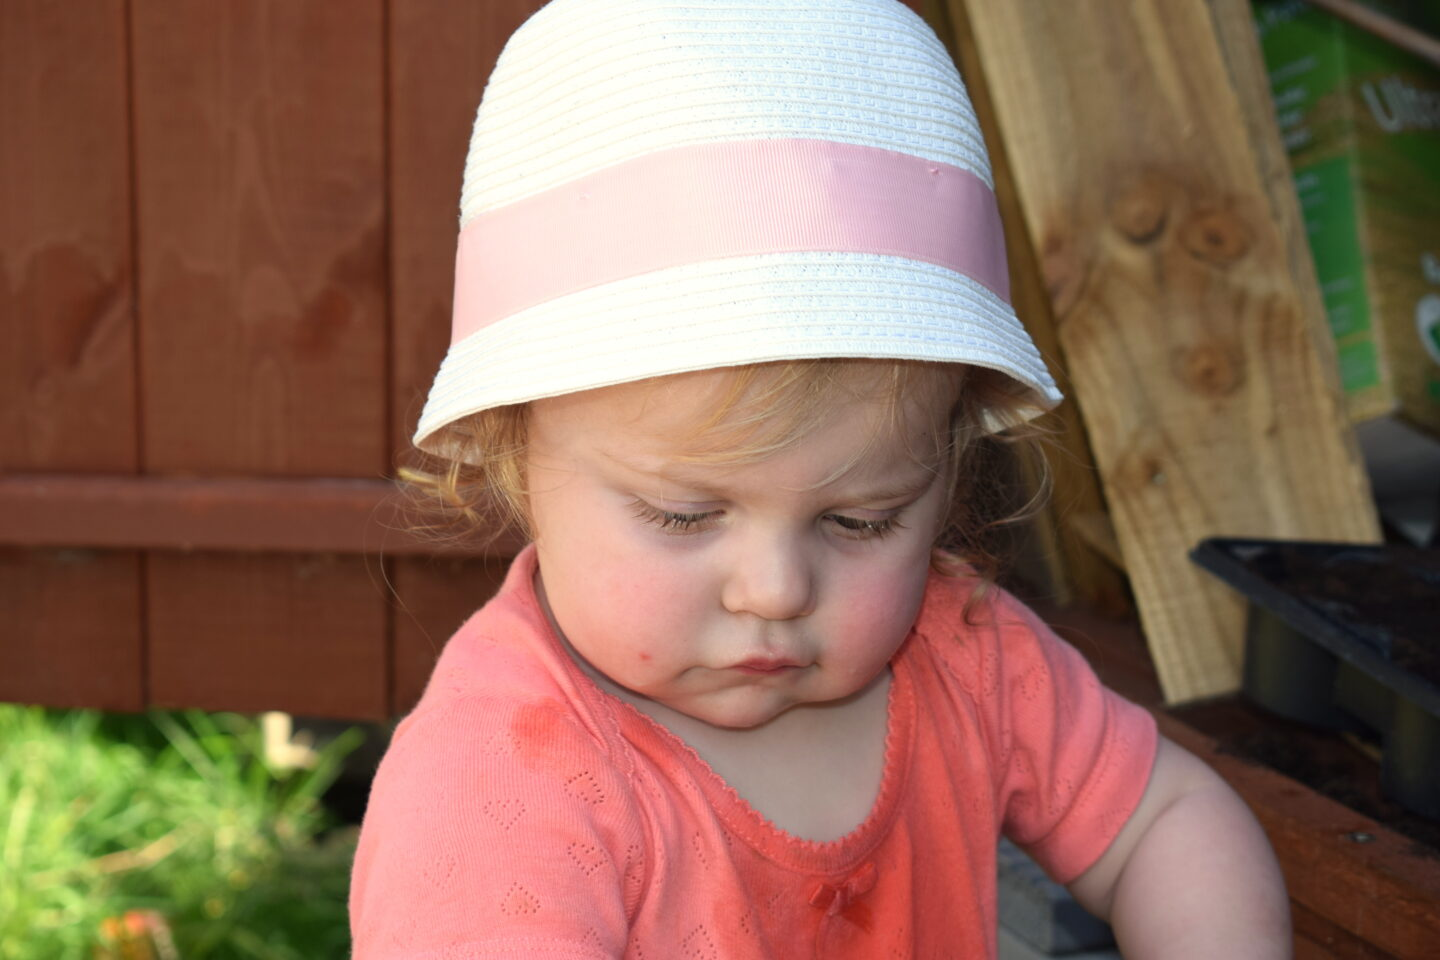 14 months old girl in sunhat, looking down